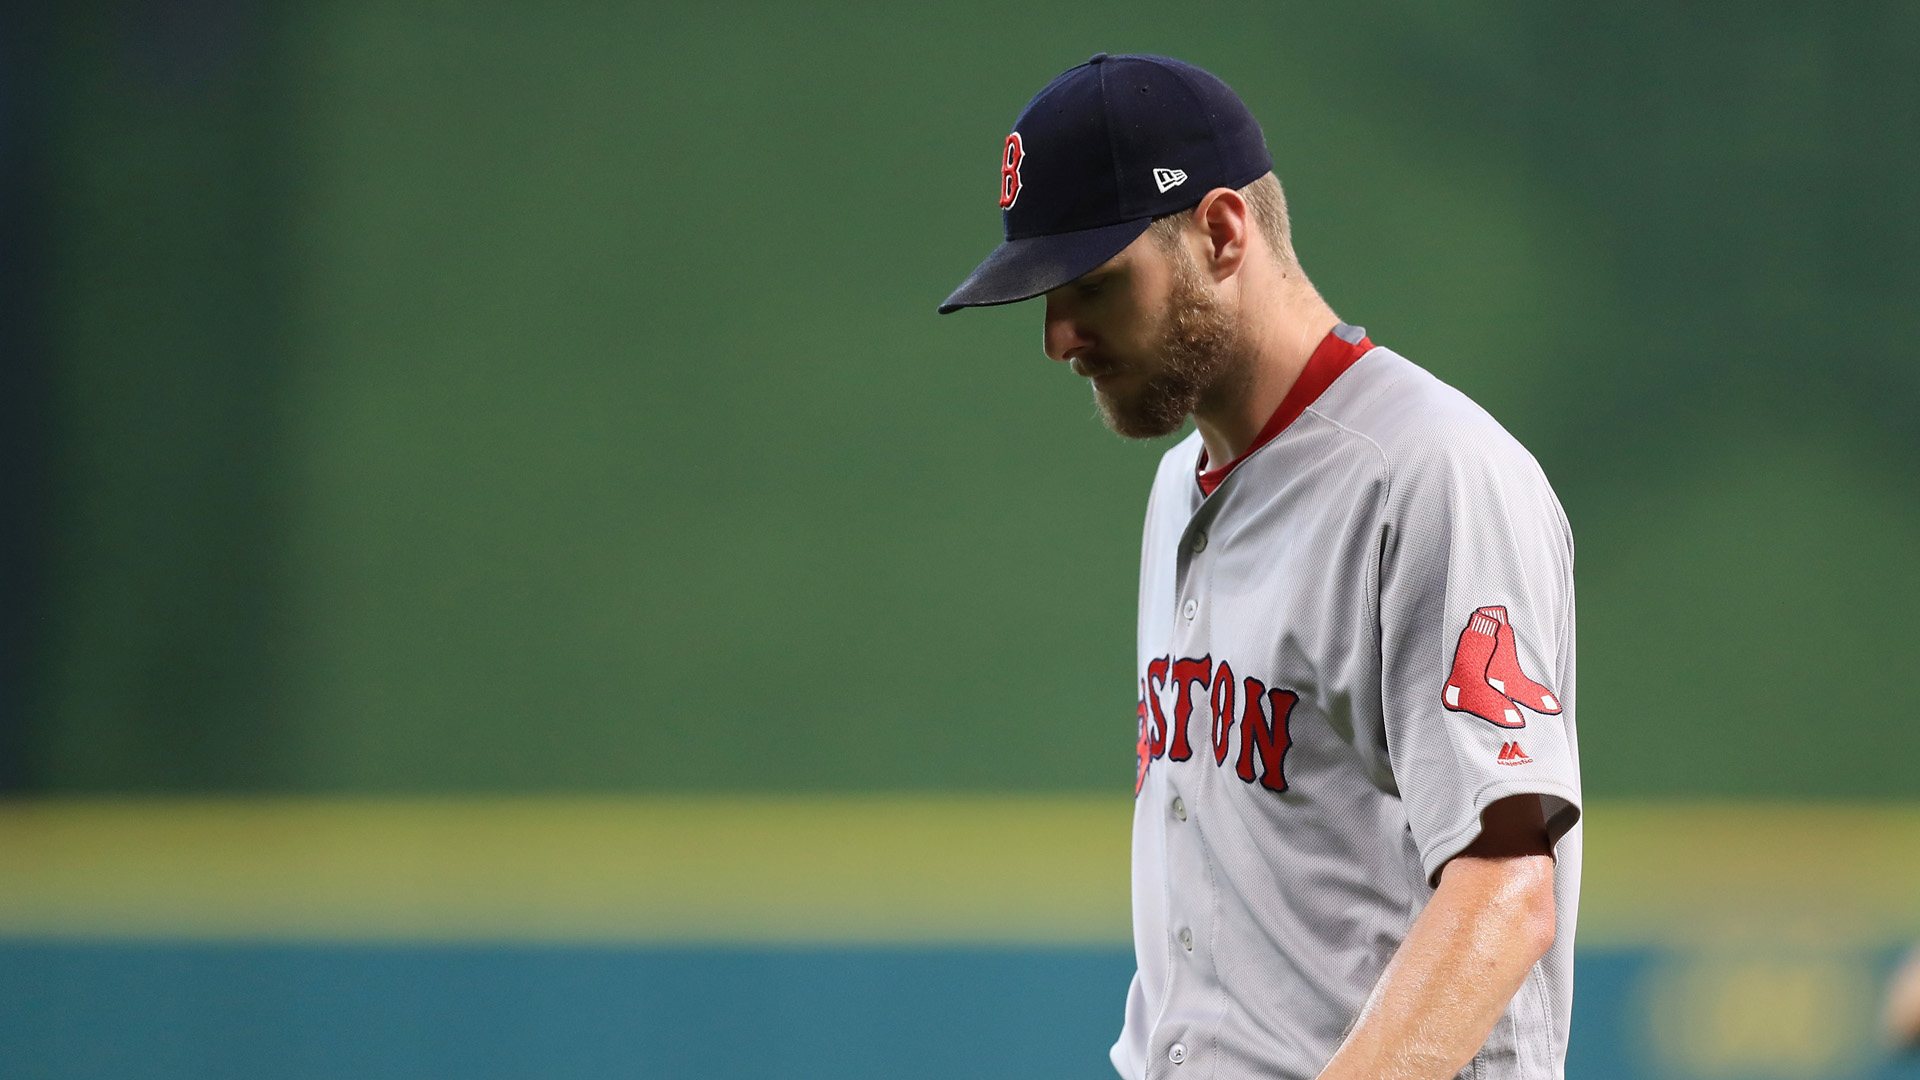 Red Sox ace Chris Sale on early season struggles: 'I just flat-out stink'